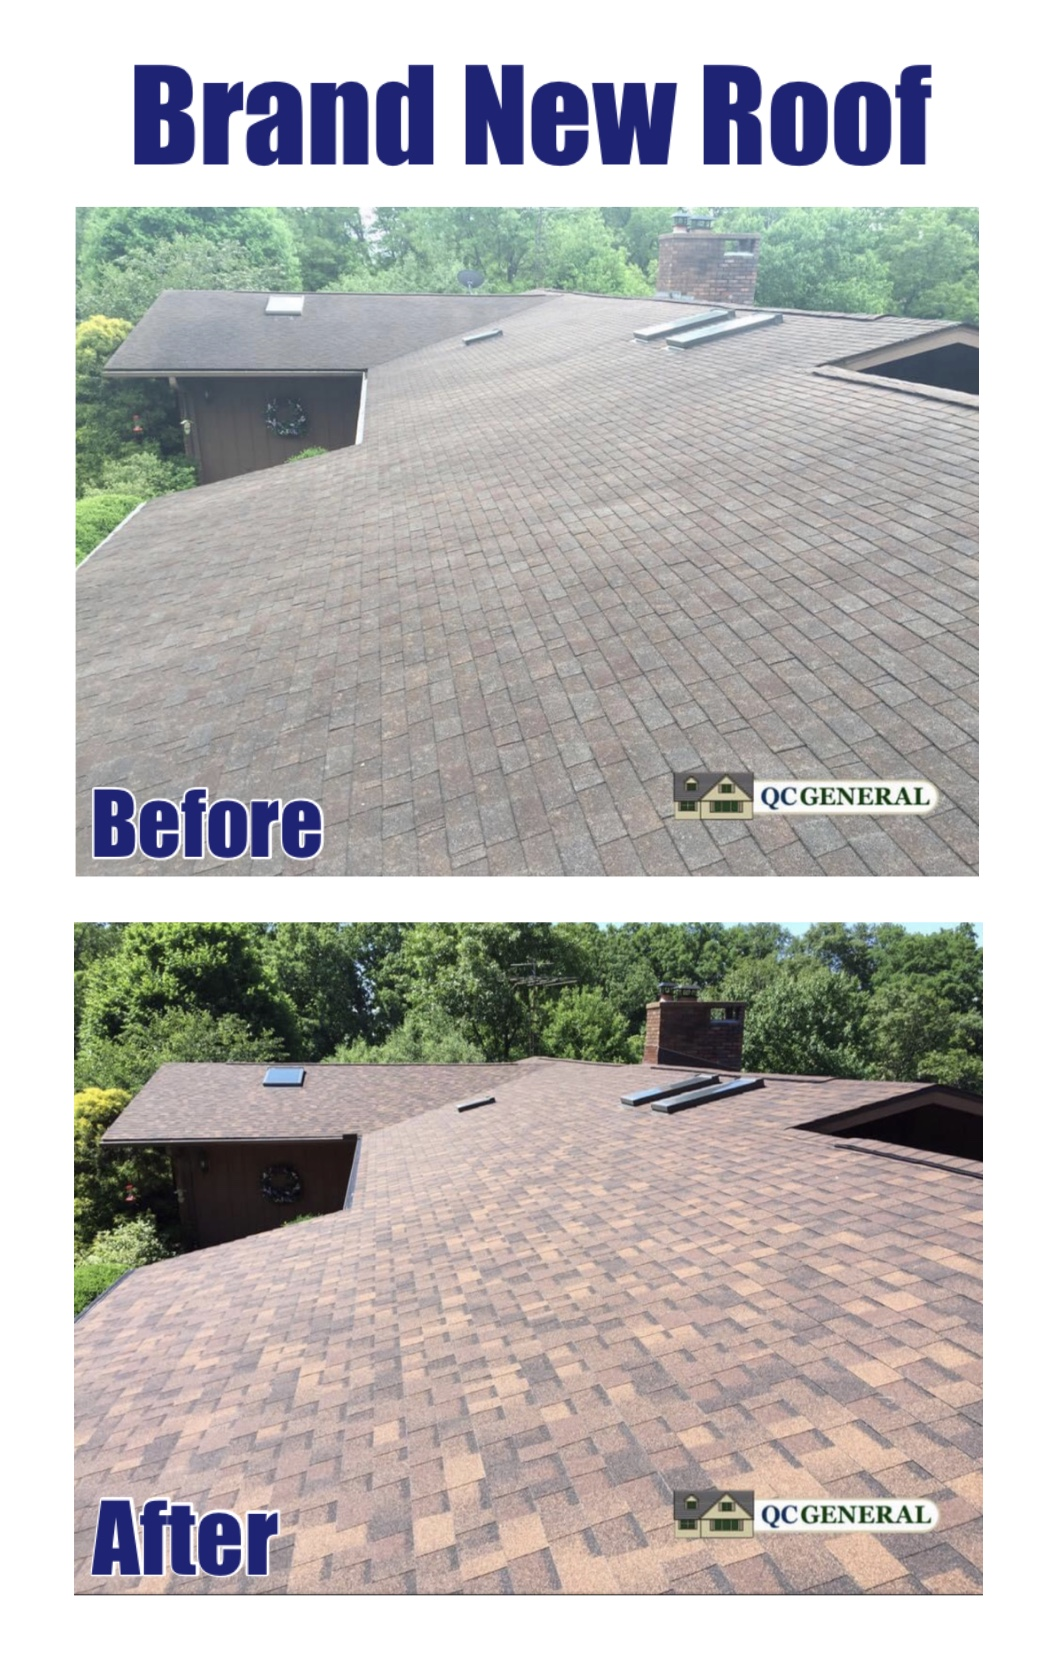 Images of new roof work completed by QC General, highlighting how the roof is now more vibrant and sturdy.